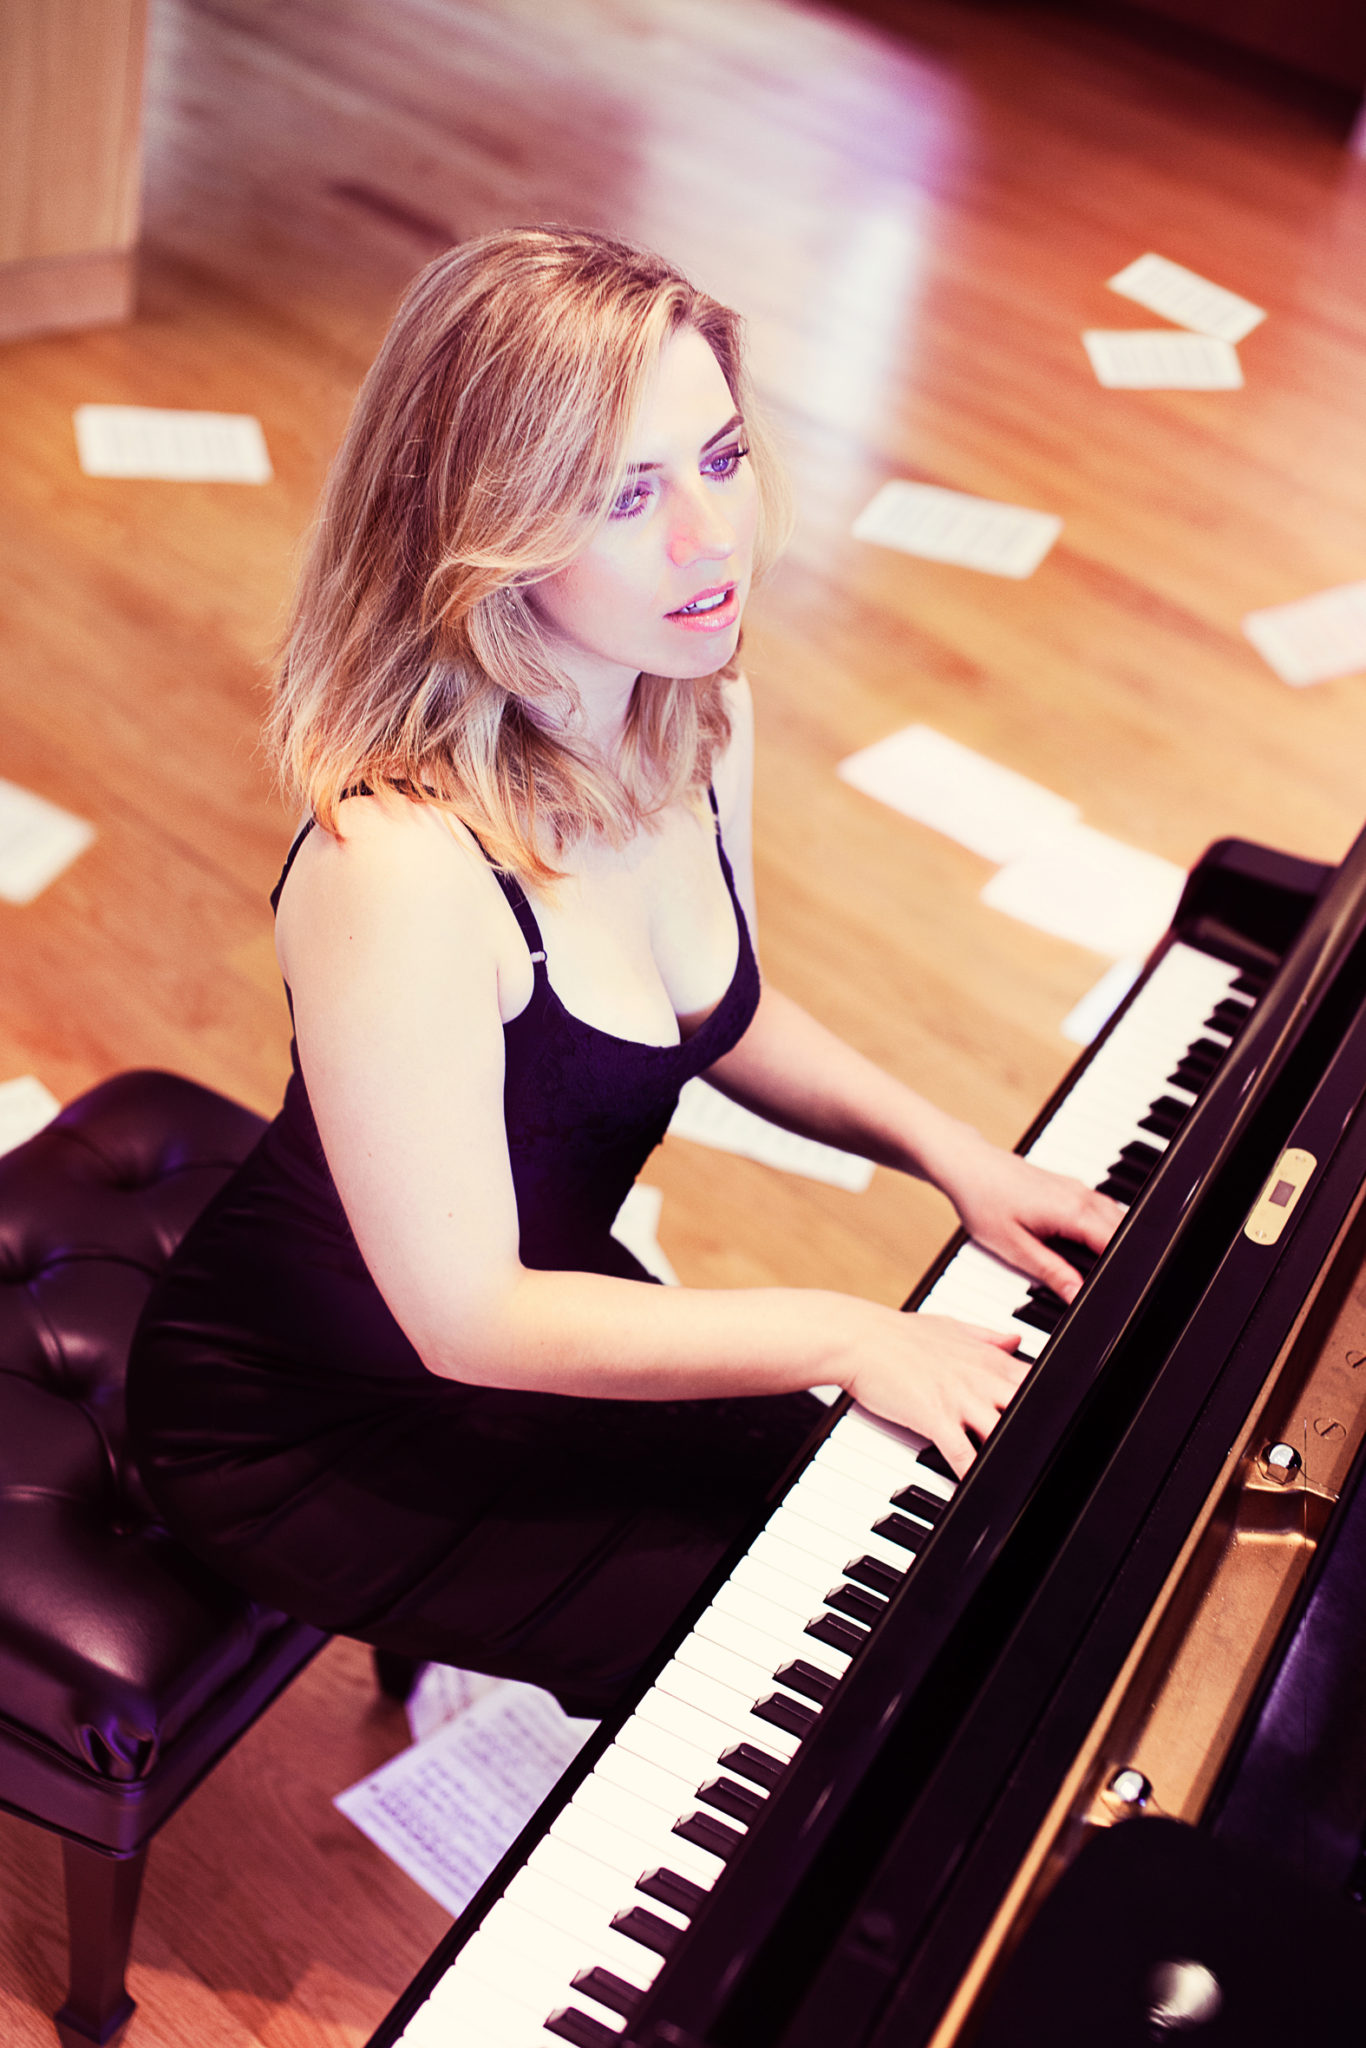 paremski-natasha-august-12-at-piano-small-cred-andrea-joynt